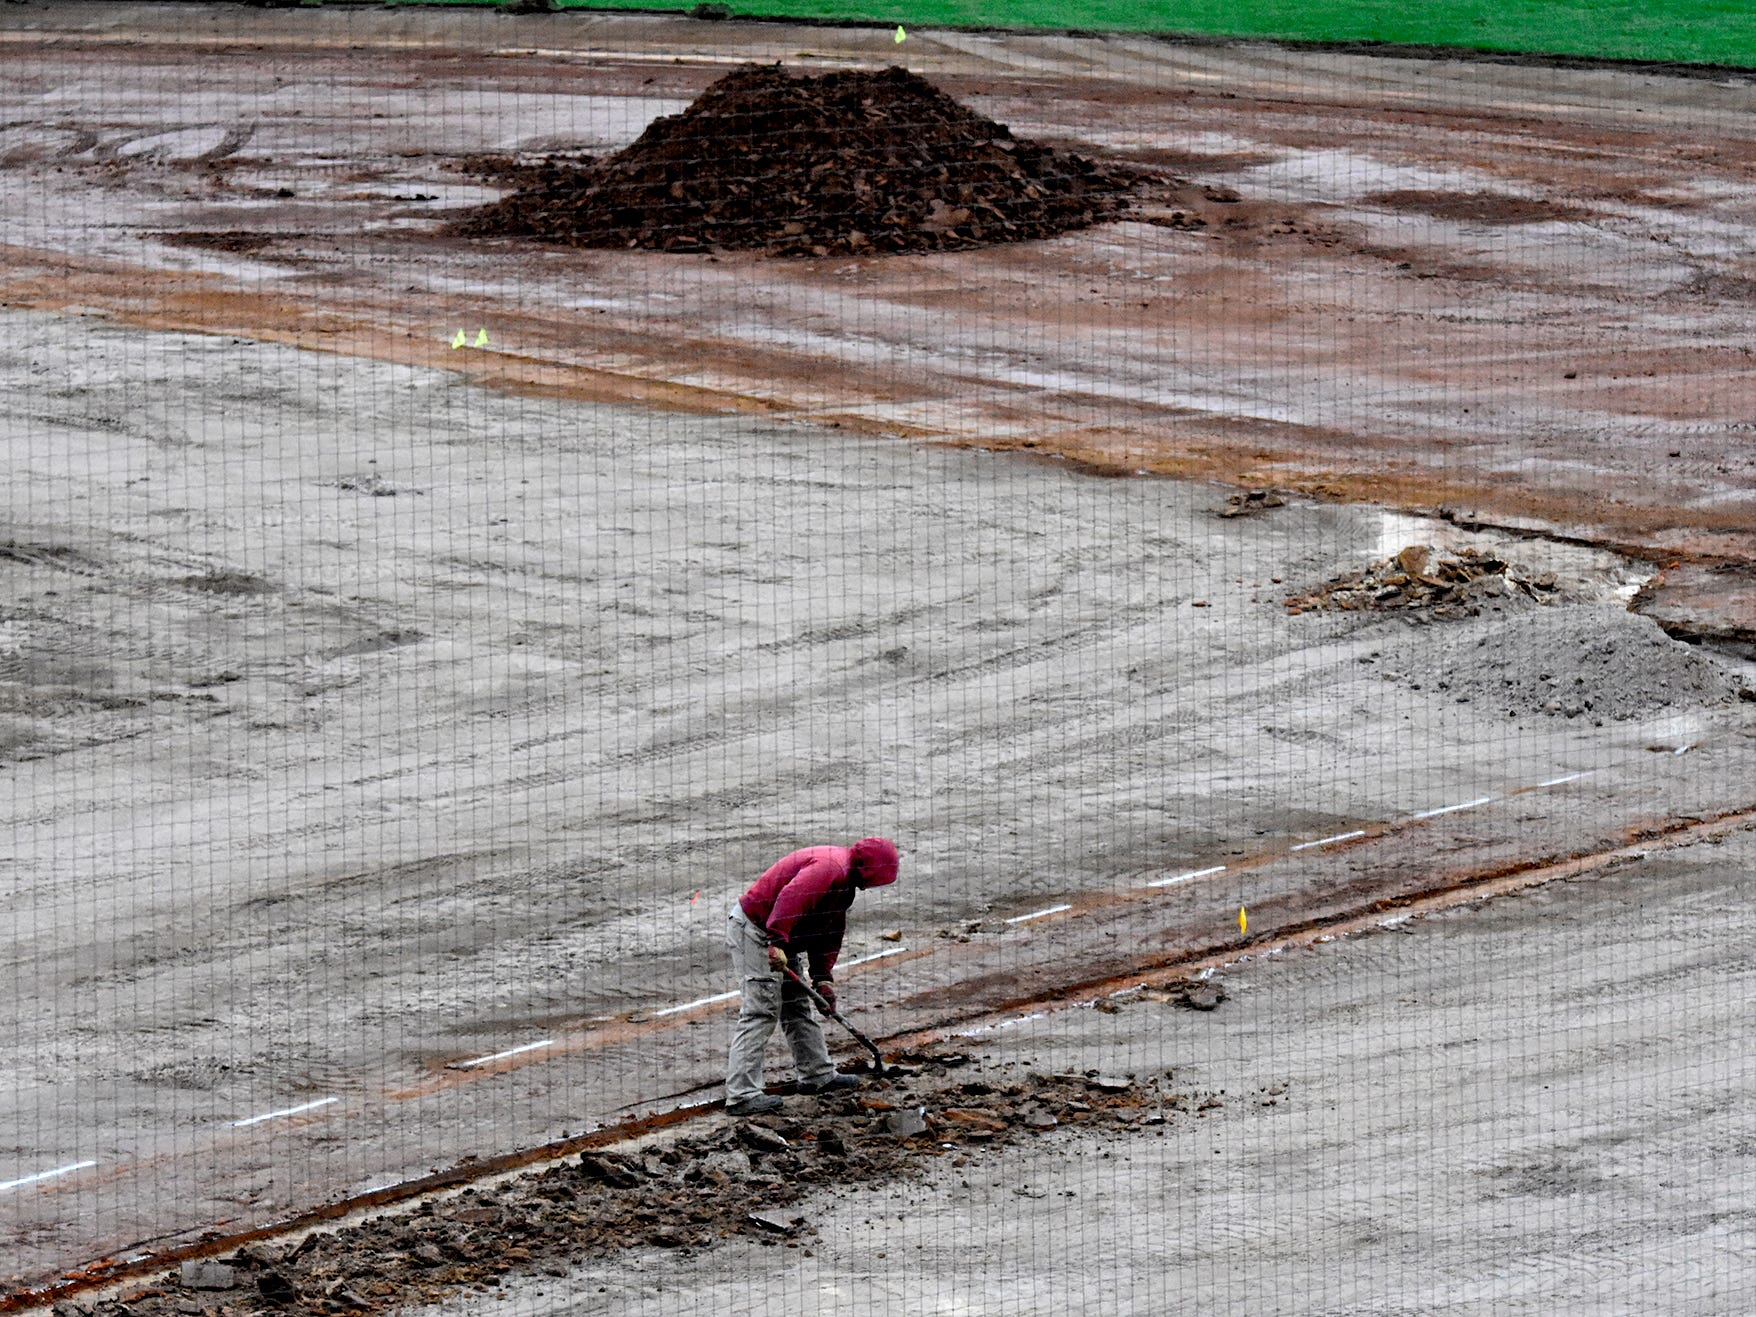 Jose Us of Hummer Sports Turf, Lancaster,  removes dirt along the first base line at PeoplesBank Park Friday, Nov. 9, 2018. The infield is being replaced this year. Bill Kalina photo